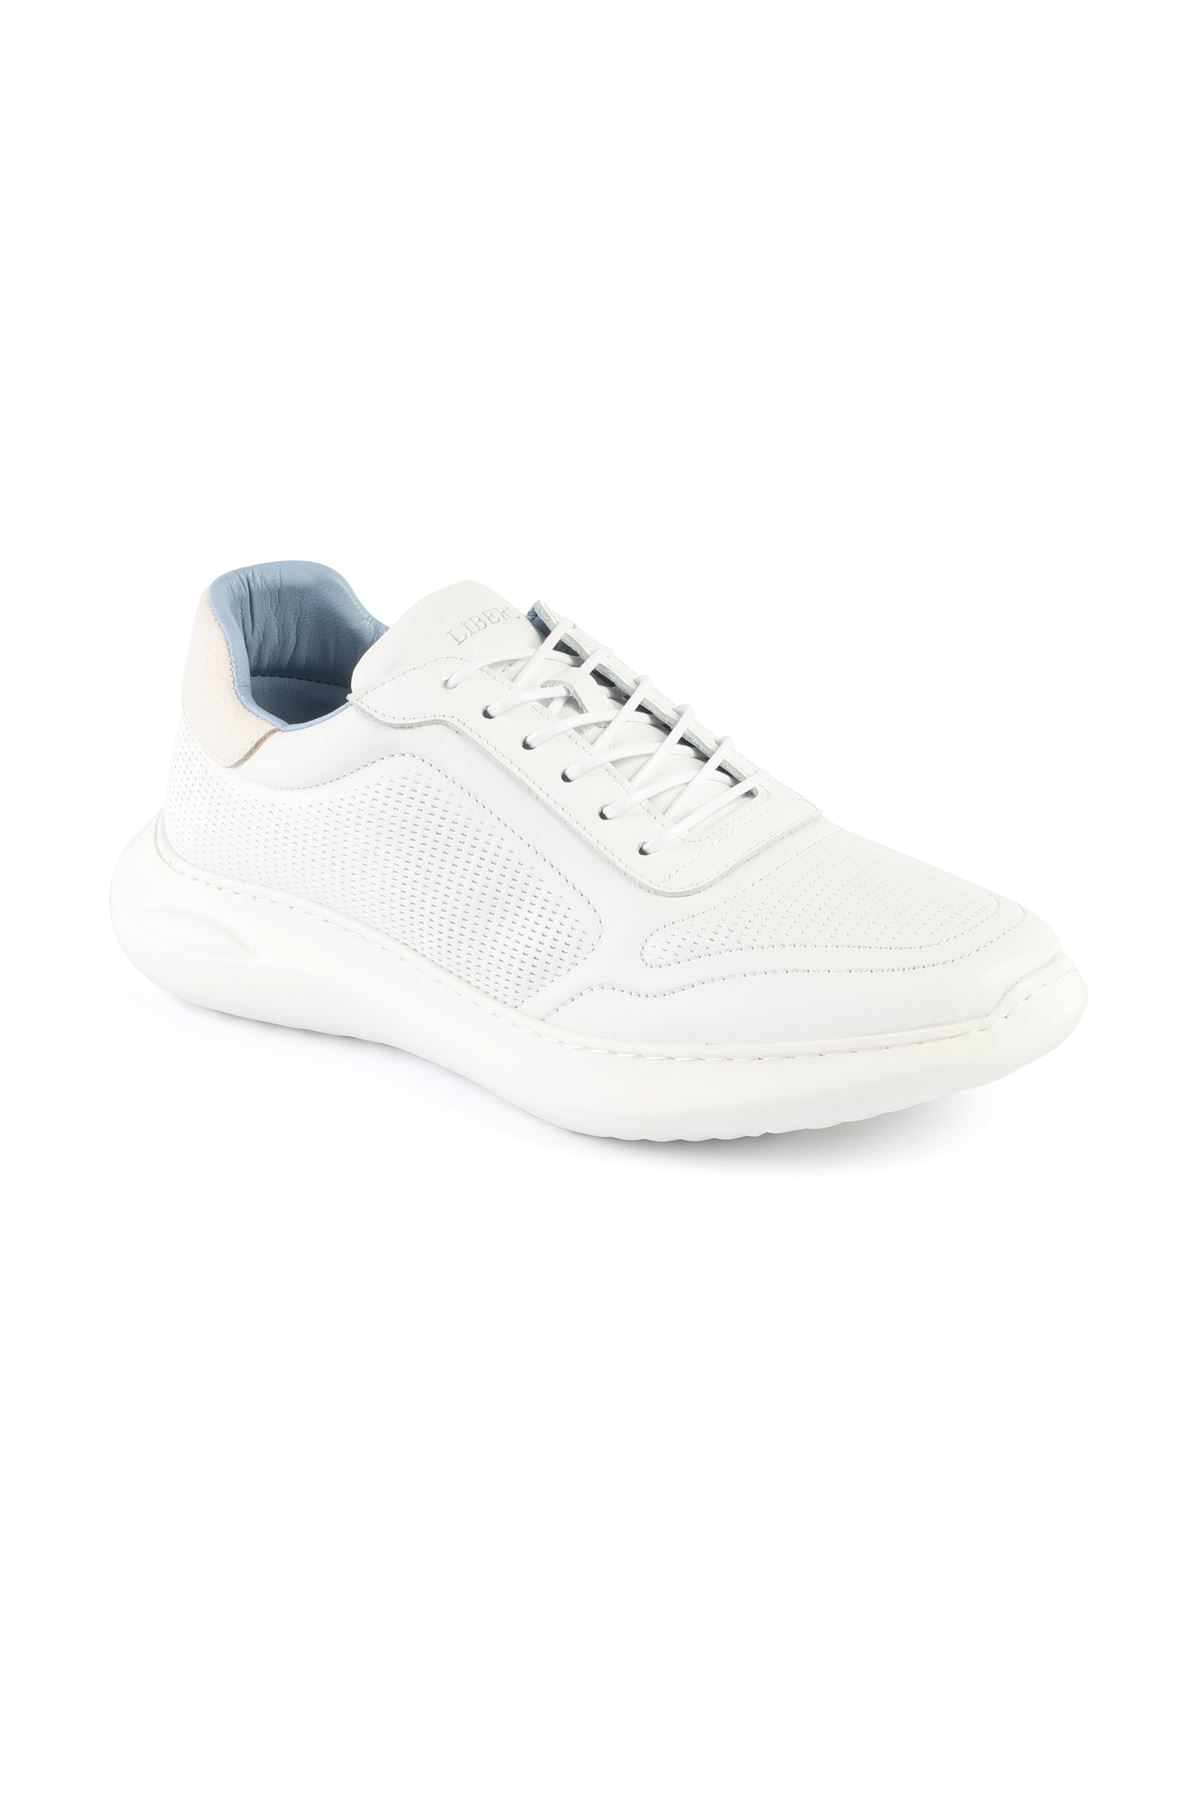 Libero L3401 White Sport Shoes